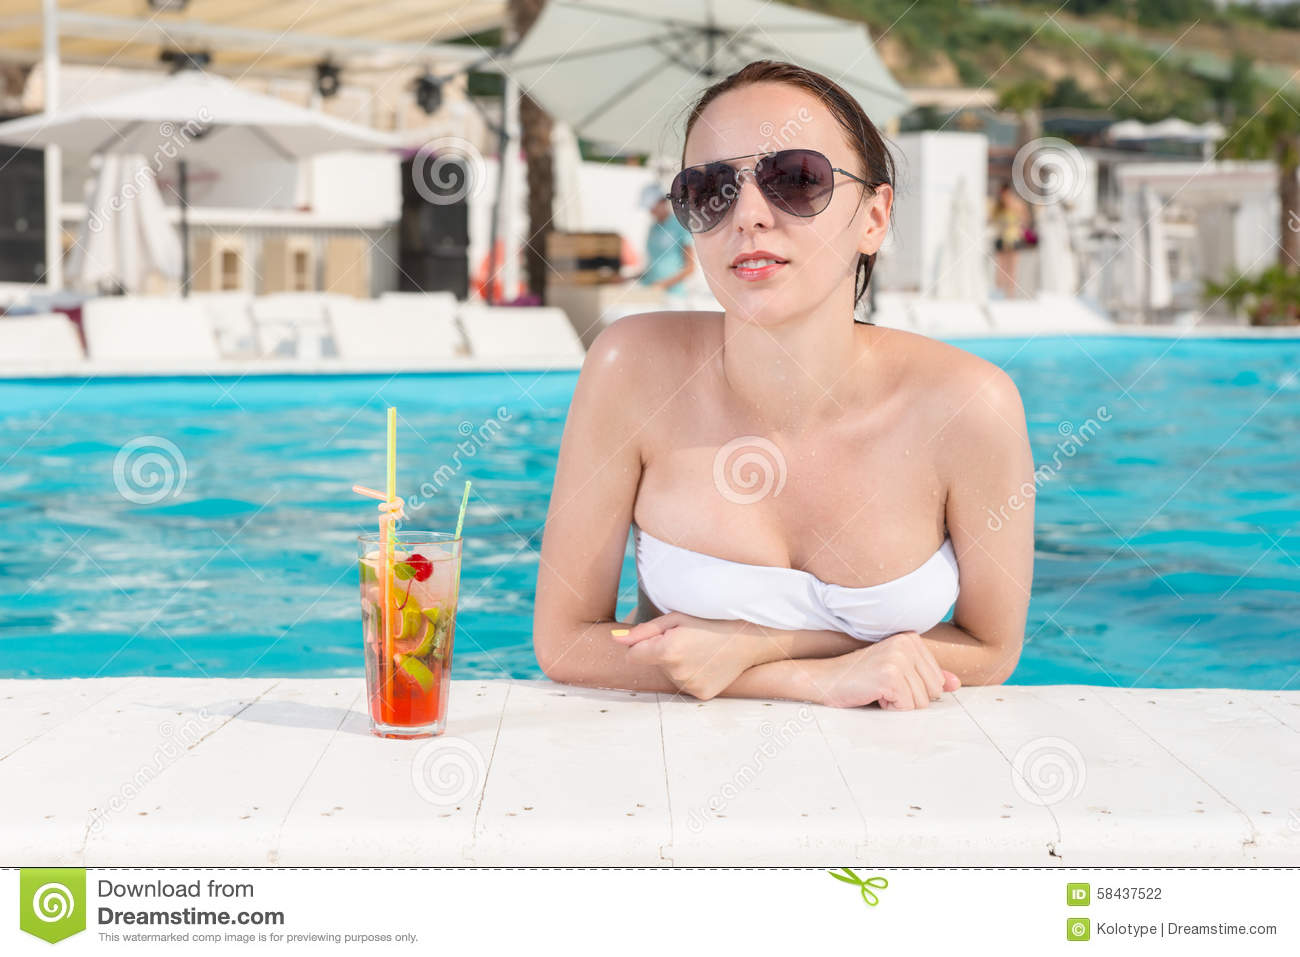 Femme sexy se penchant au bord de la piscine photo stock for Au bord de la piscine tours